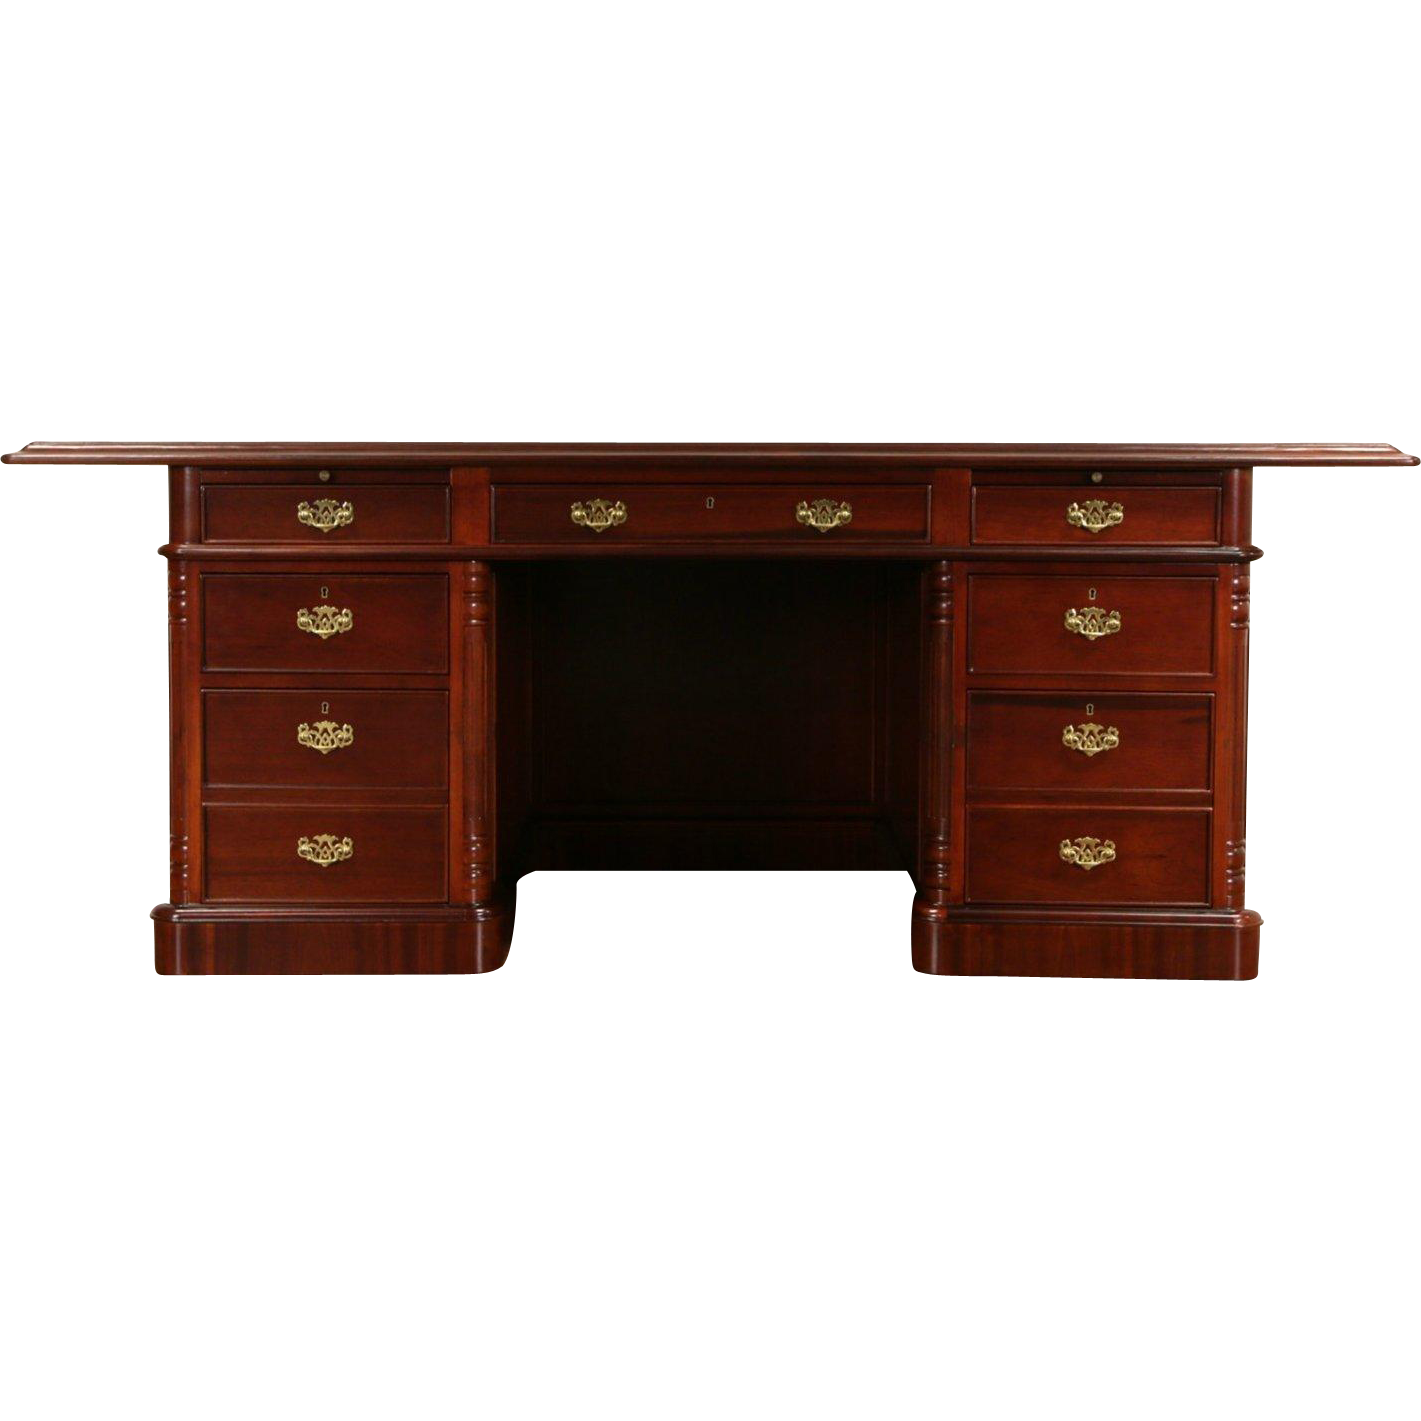 "Executive or Library 6' 10"" Traditional Desk, Signed Mahogany & Leather"